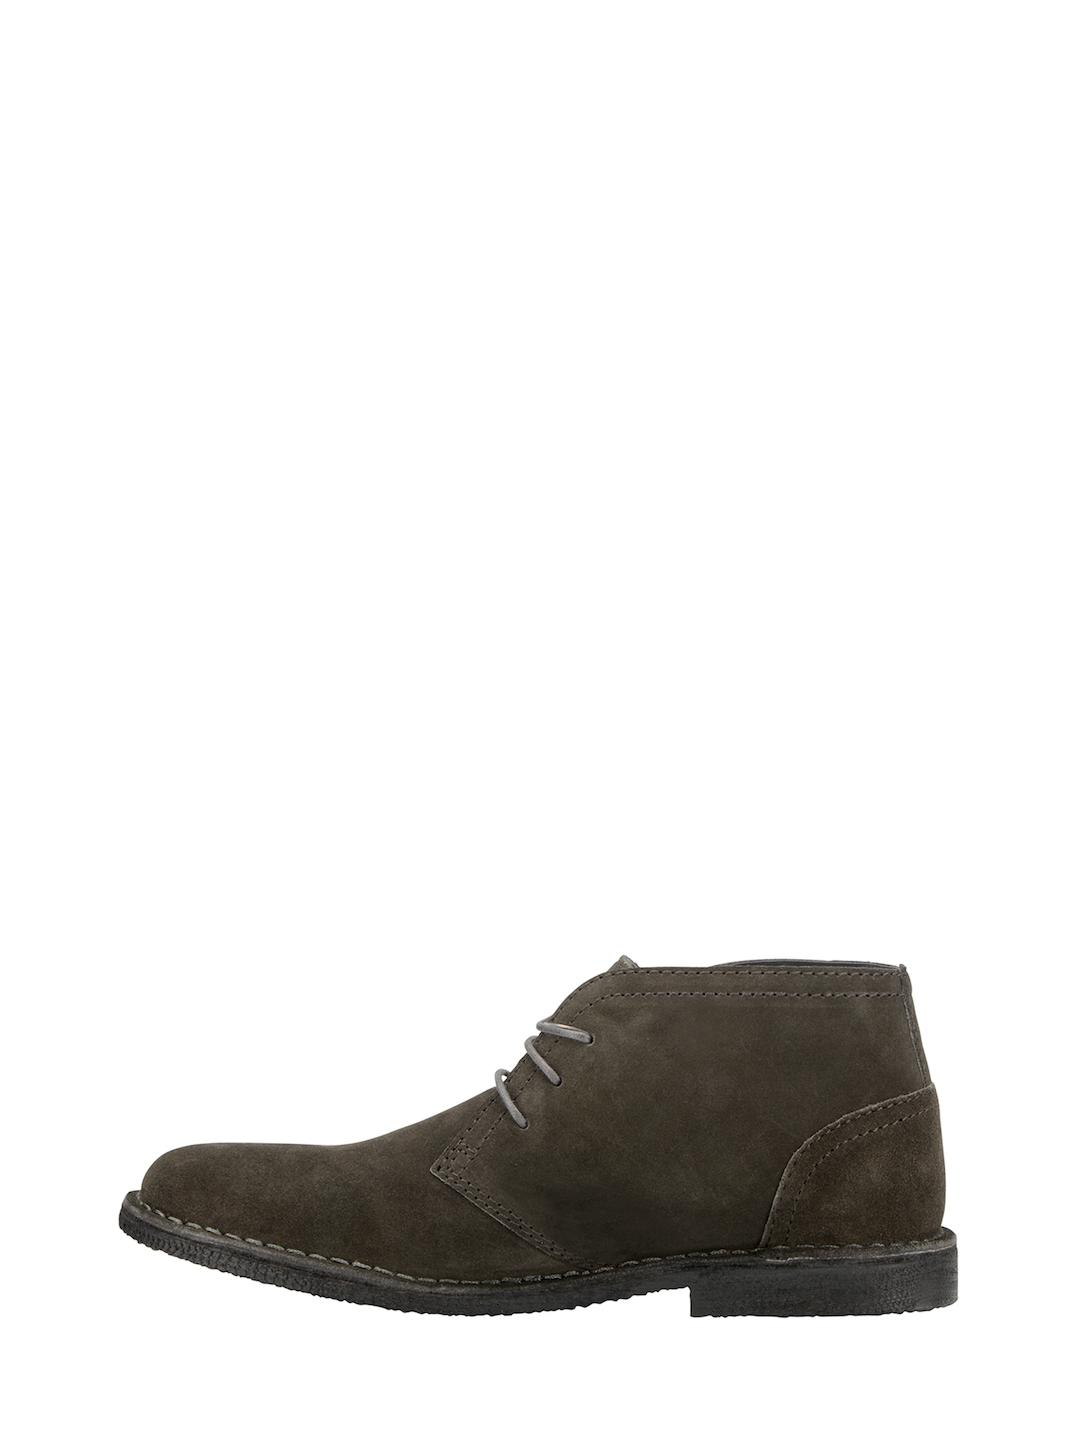 9ea908b0a7f5 Lyst - Marc New York Walden Chukka Boot in Gray for Men